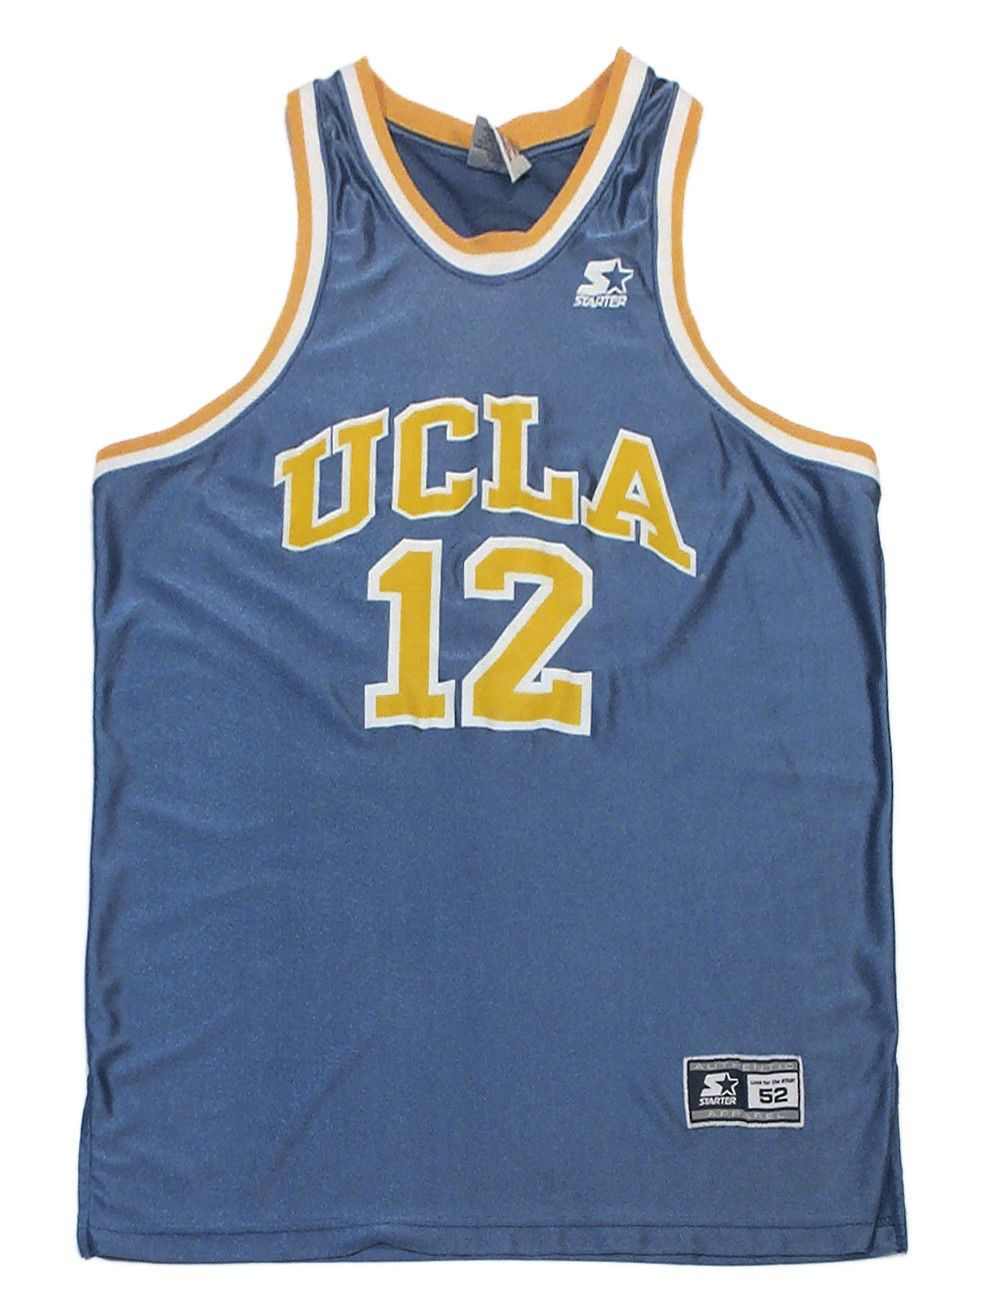 sale retailer 13bdd adcb6 UCLA BRUINS Men's Starter Authentic Apparel Basketball ...